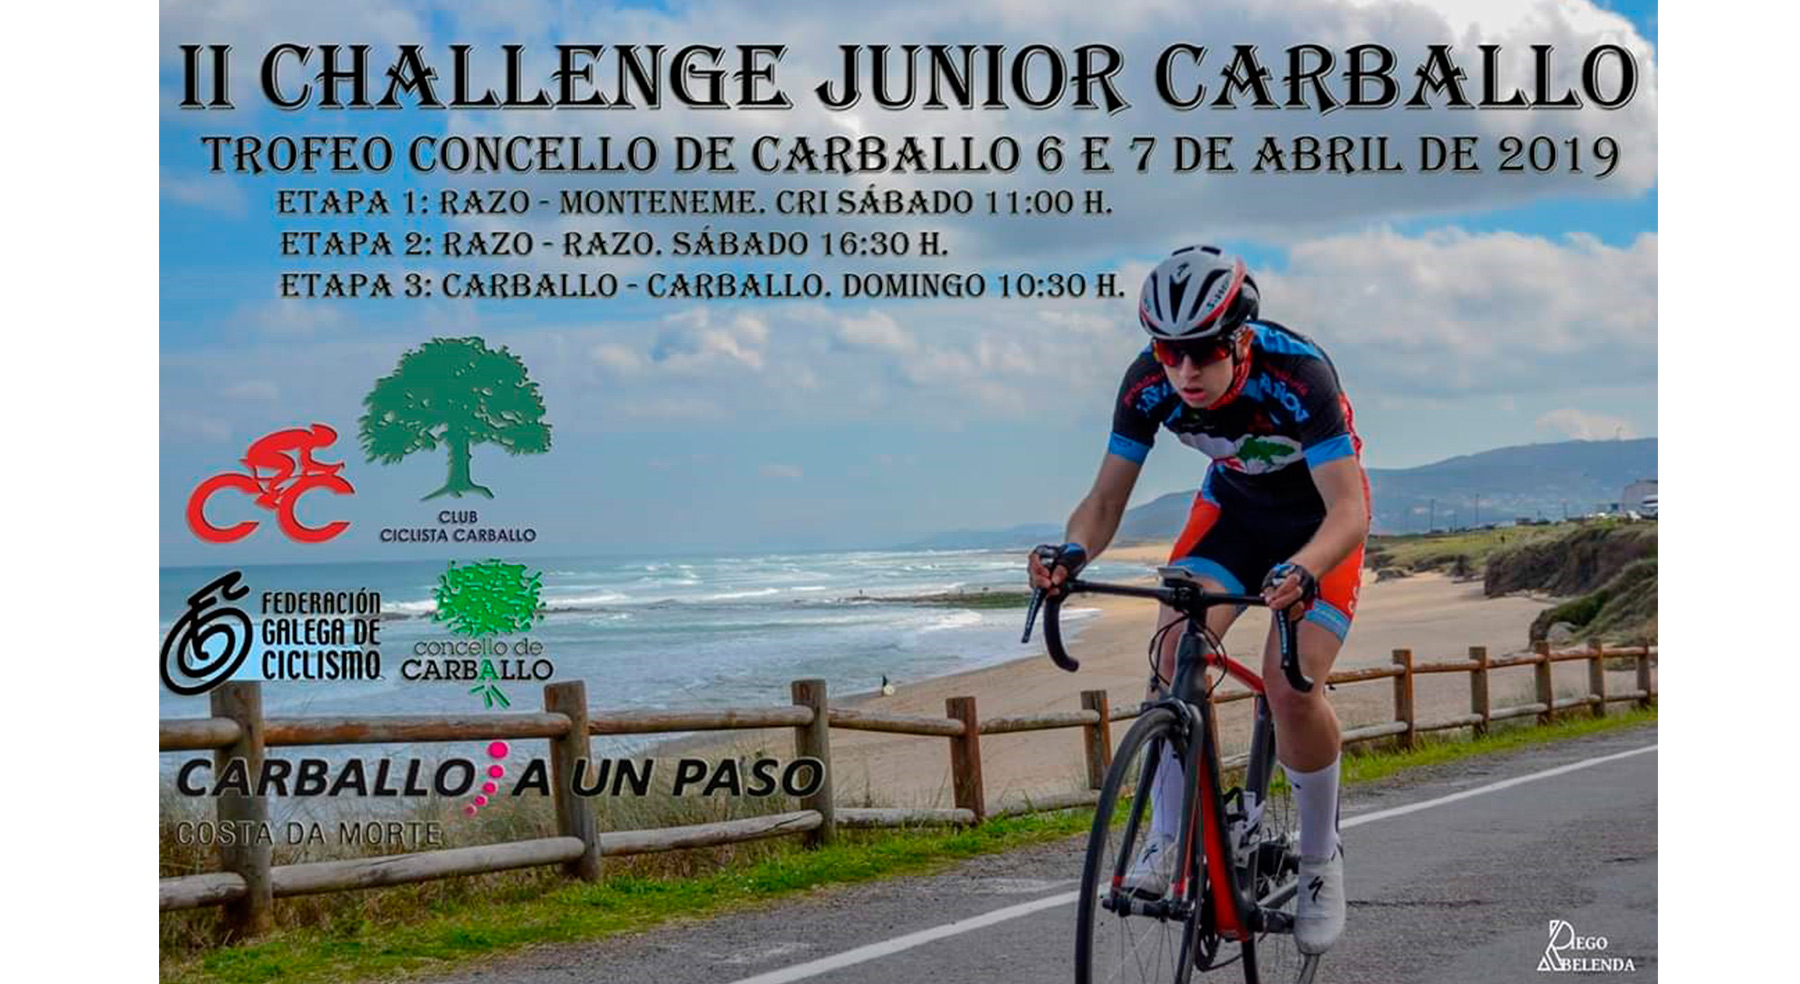 II CHALLENGE JUNIOR CARBALLO 2019